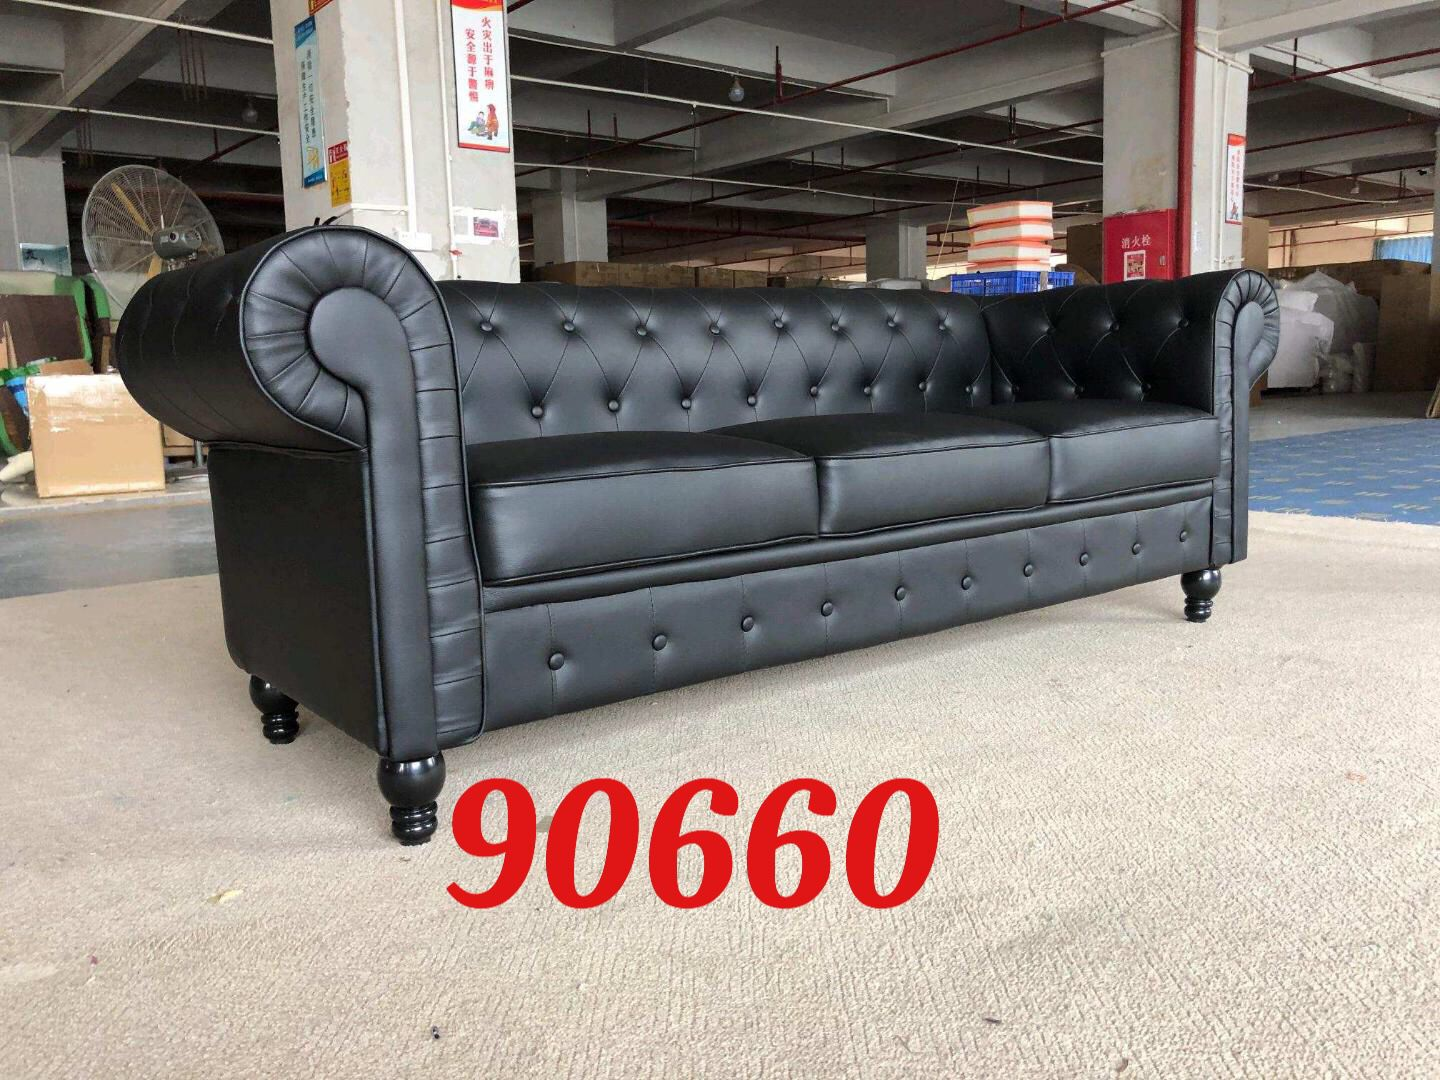 Black Friday special. Sofa or loveseat. Black or white $199 or 2 for $350. Free delivery.